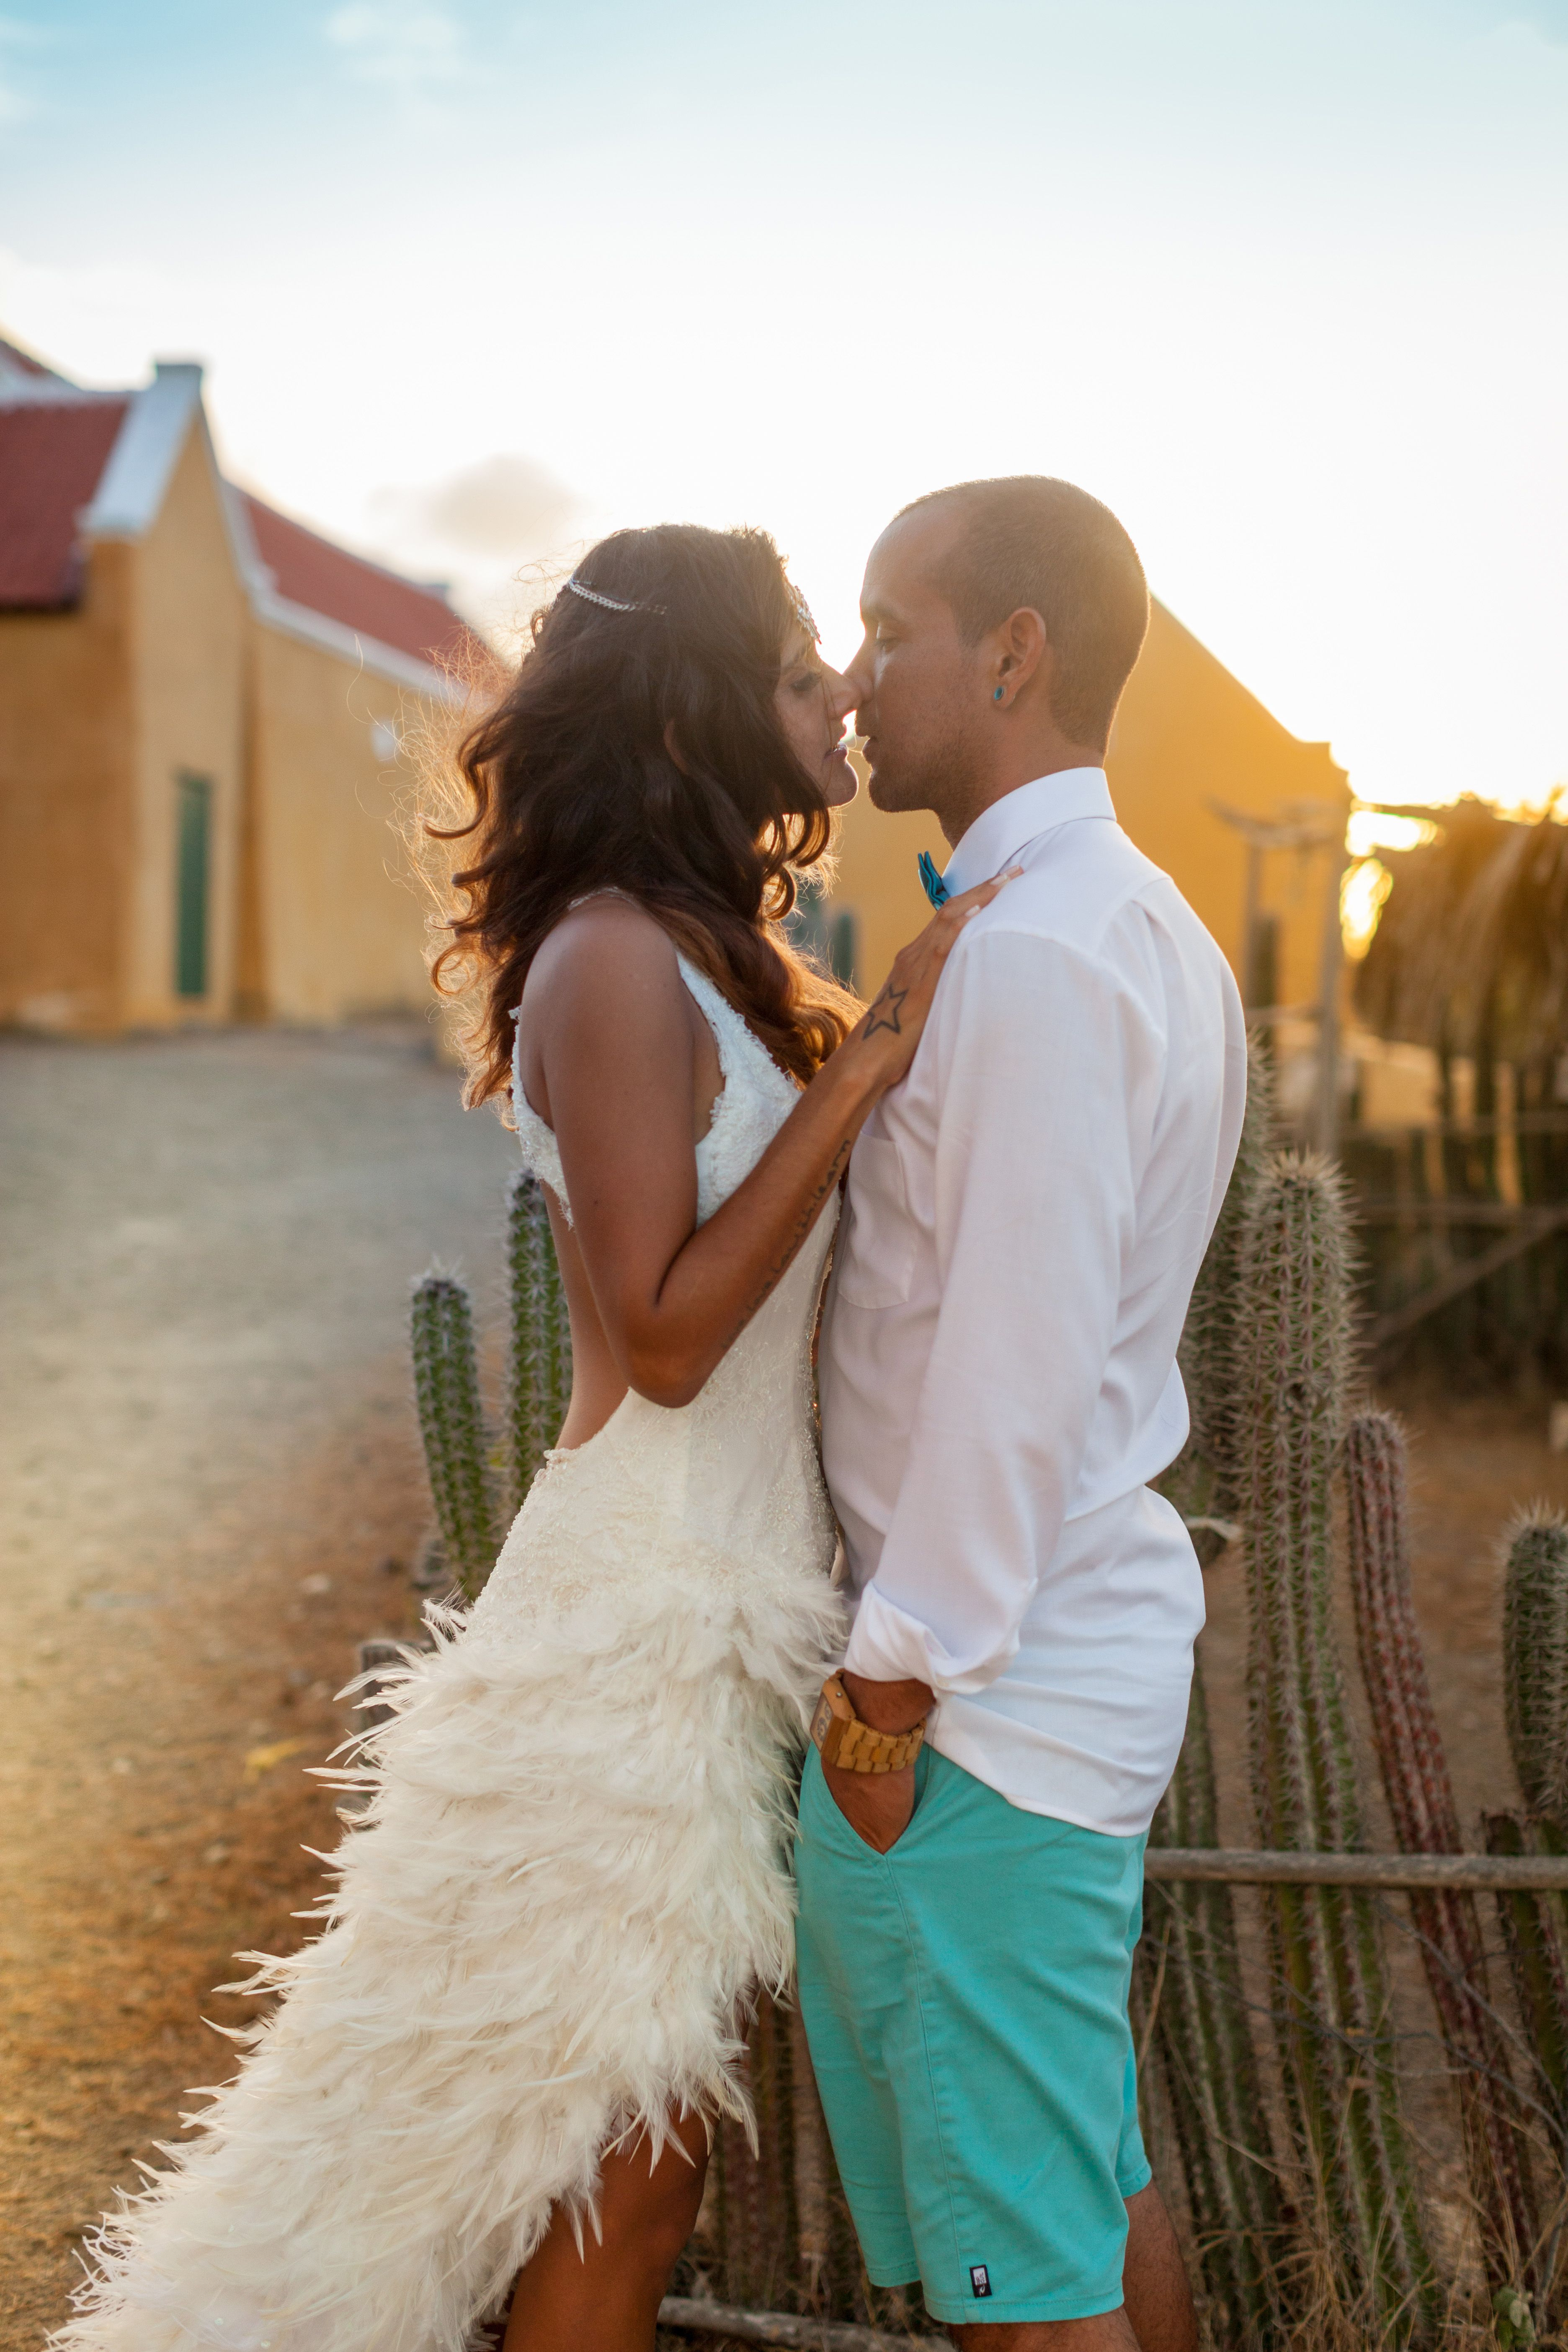 Wedding shoot by wow wedding details wedding dress by mytsah our